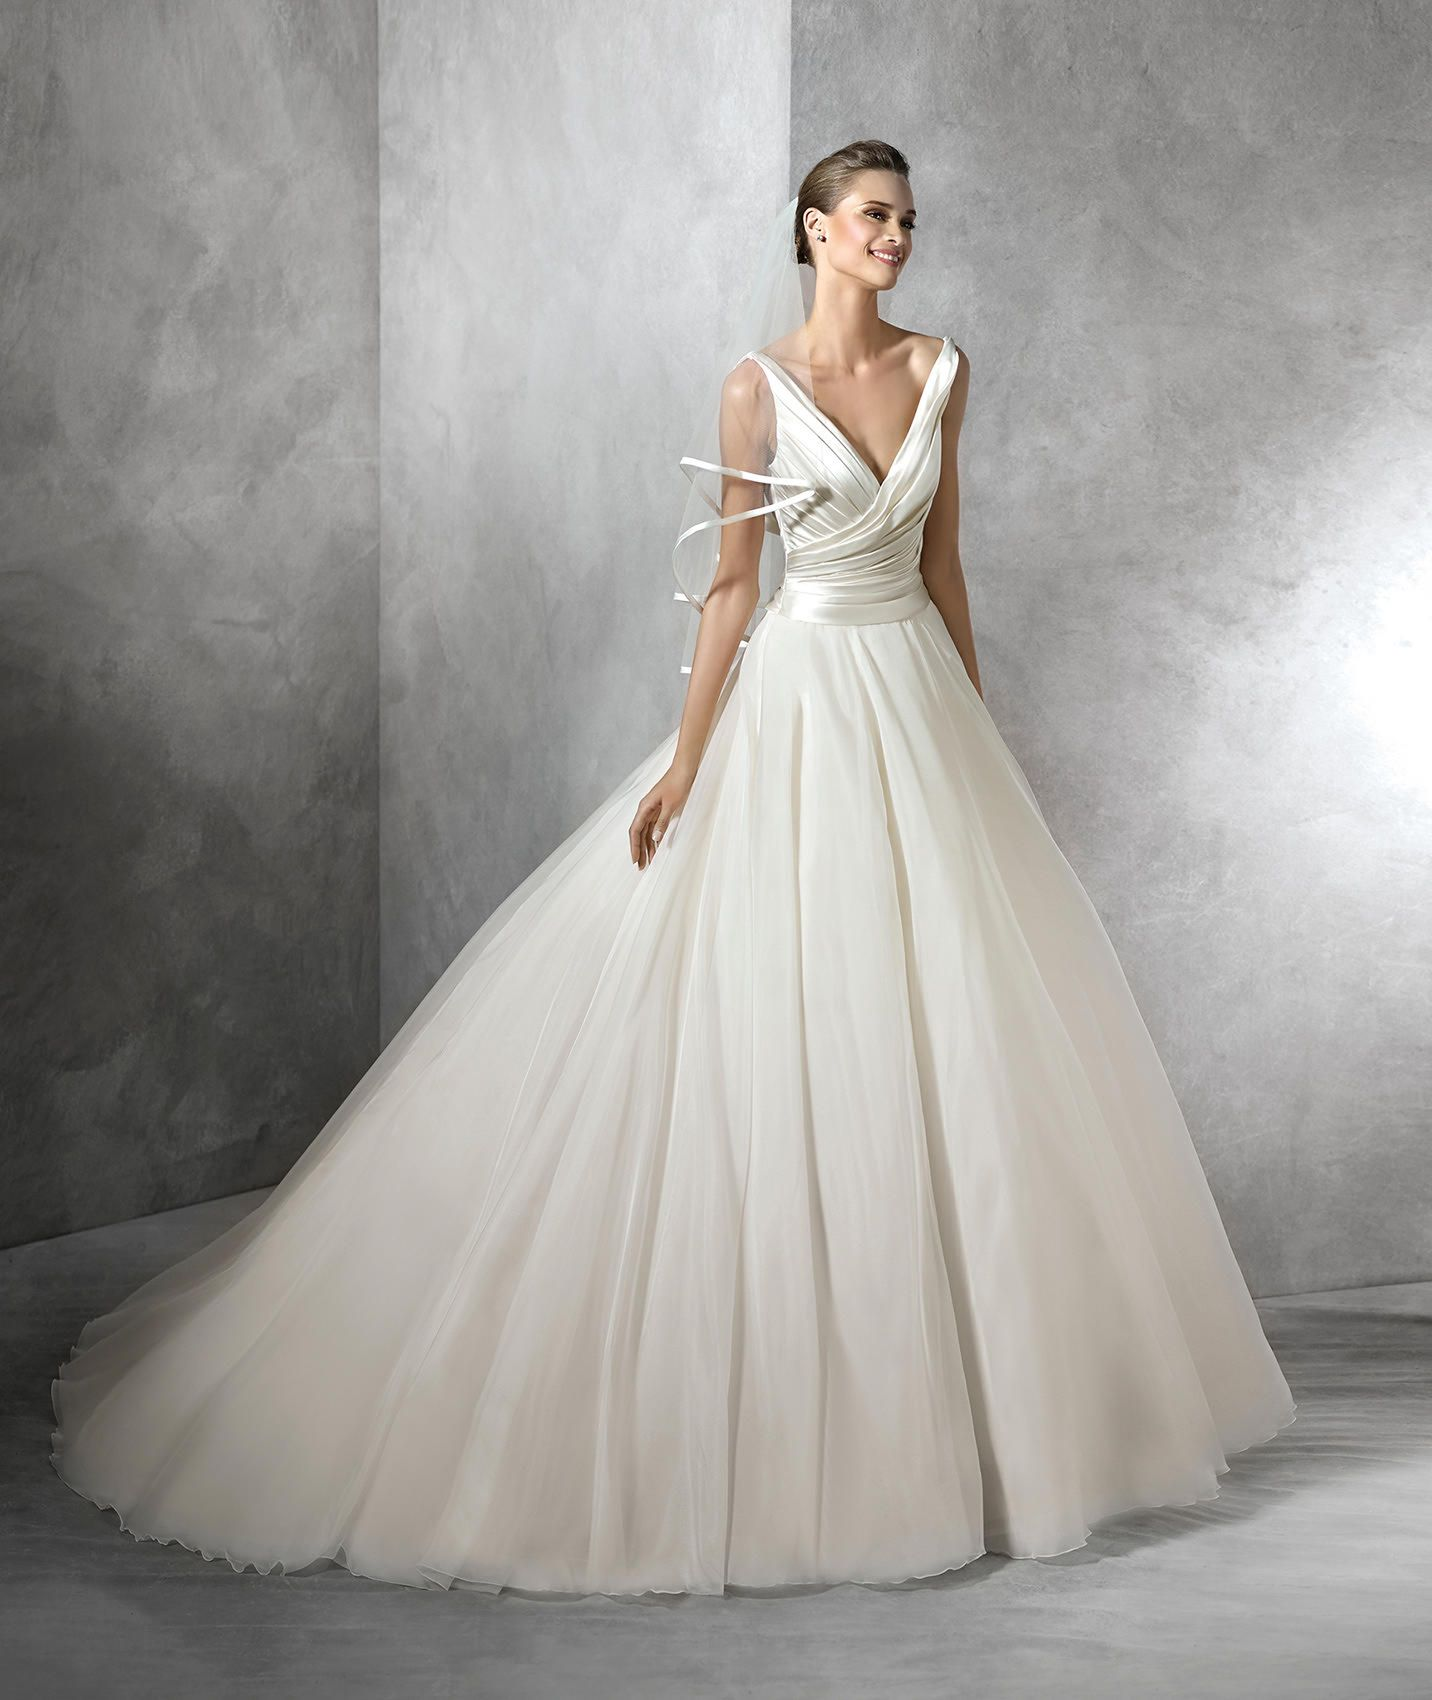 Pronovias Tresia, available on loaner! $9 loaner fee gets the